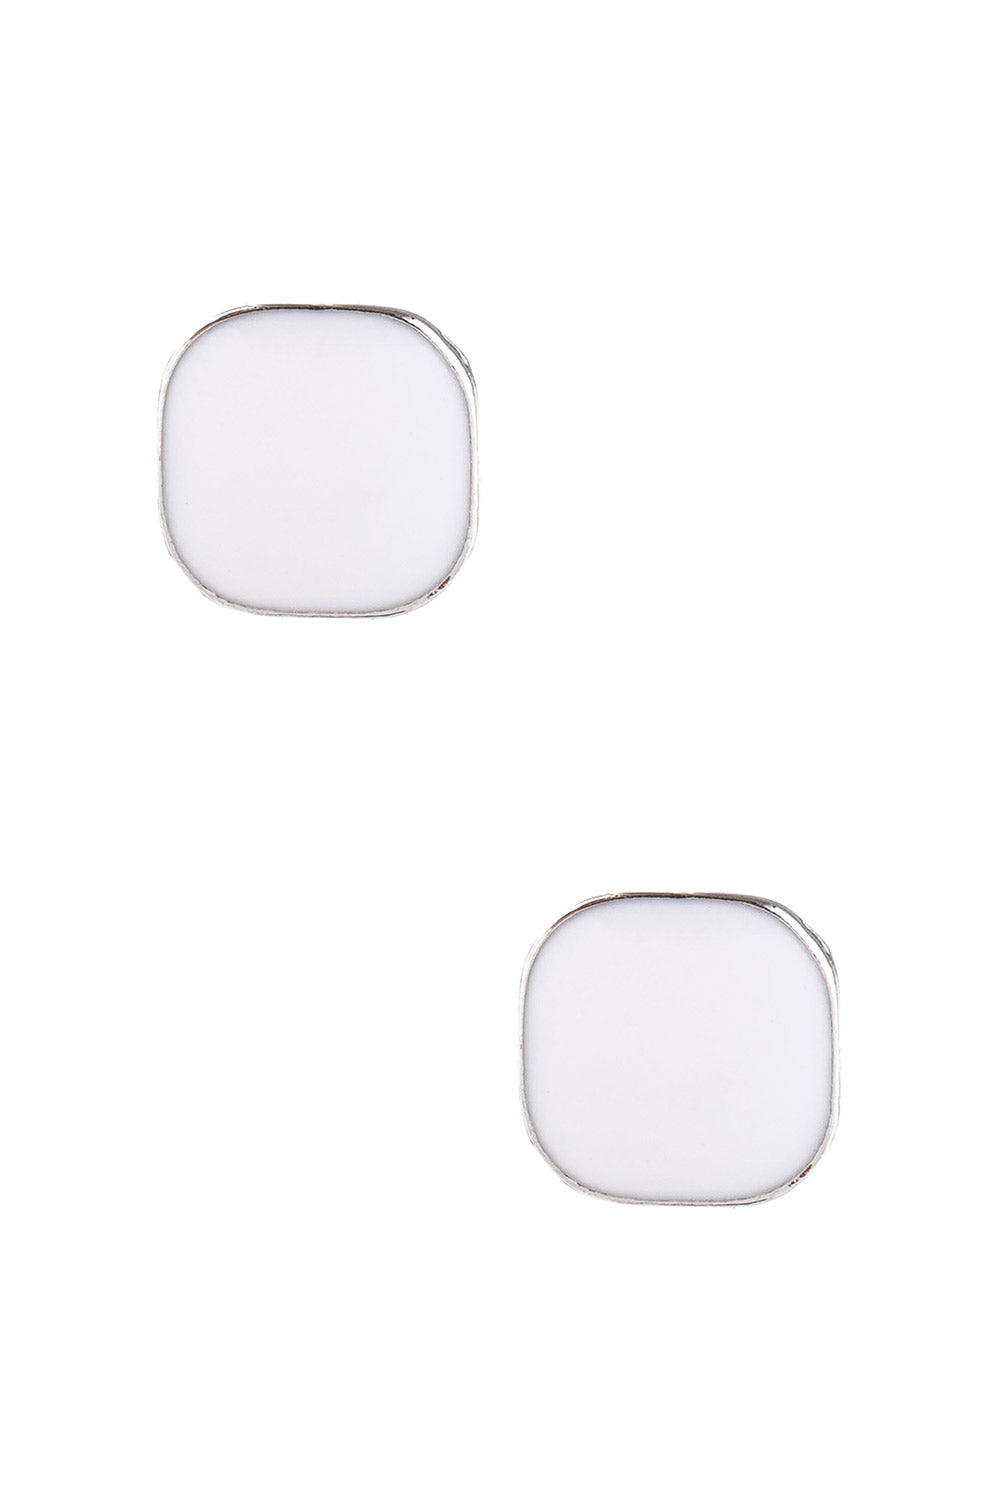 Type 4 Square Peg Earrings In White